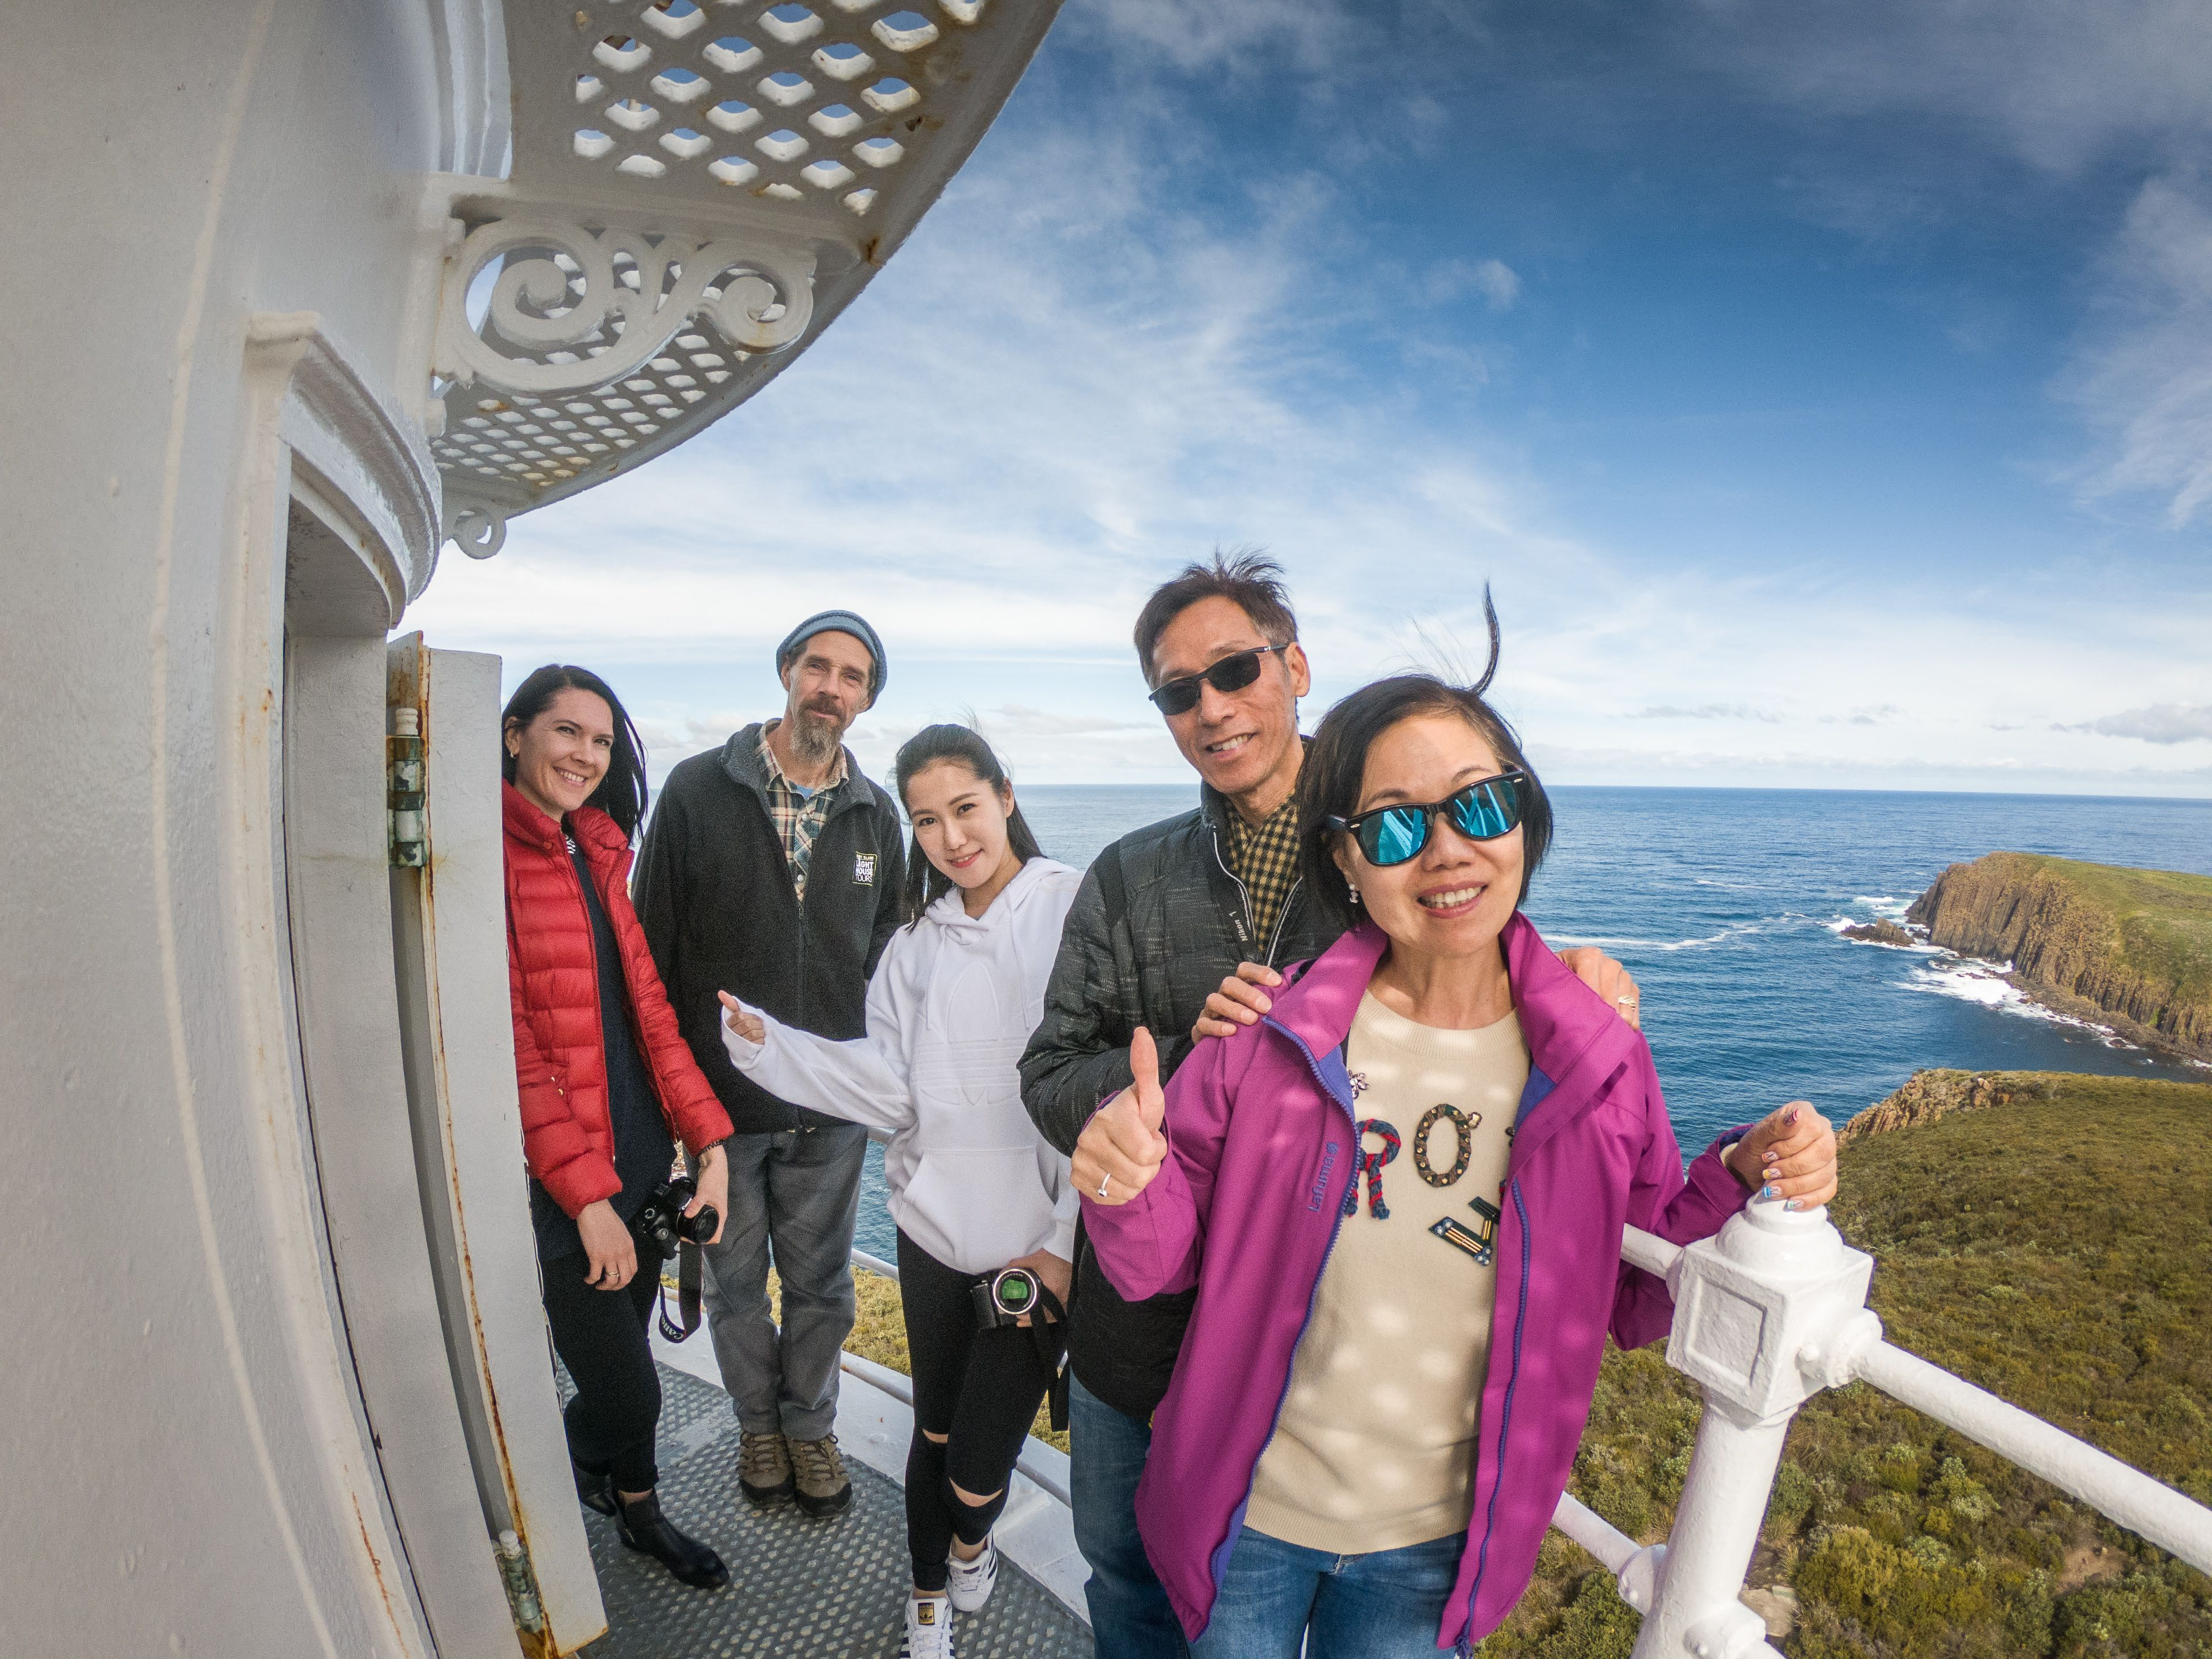 Bruny Island Food, Sightseeing & Lighthouse Tour with Lunch